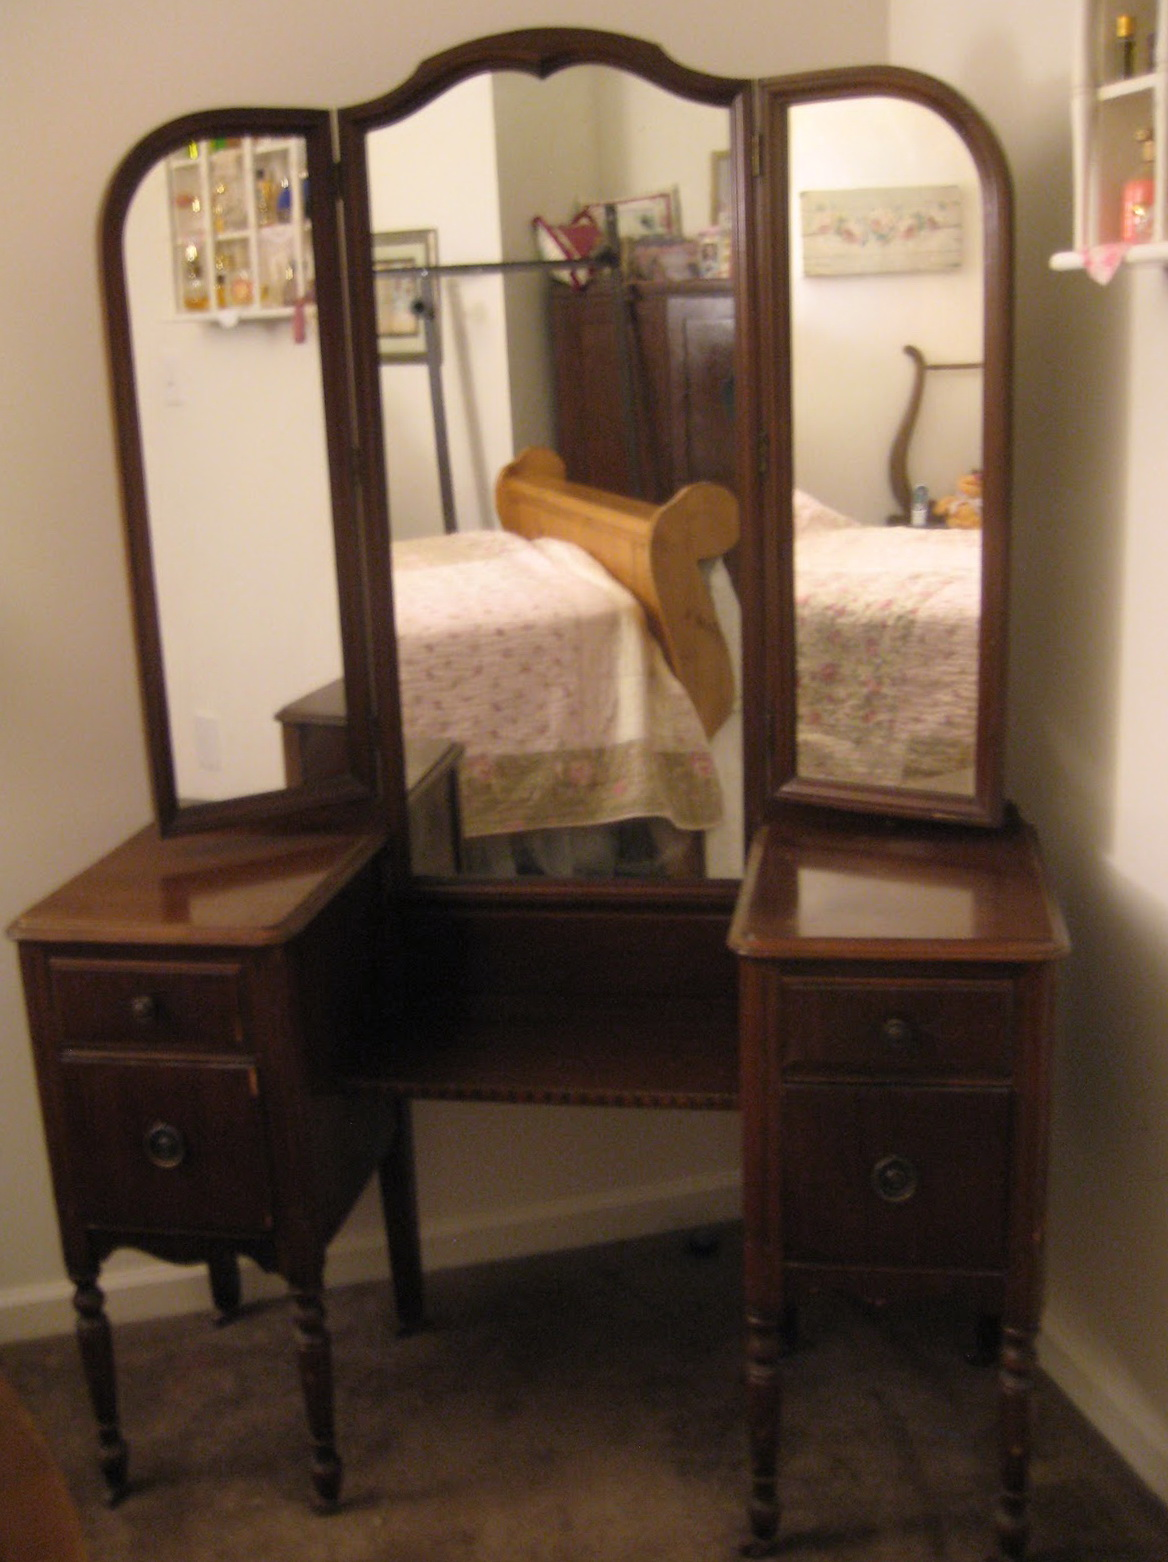 ... Antique Makeup Vanity With Mirror Home Design Ideas ... - Vintage Vanity Dresser With Mirror - Mirror Ideas